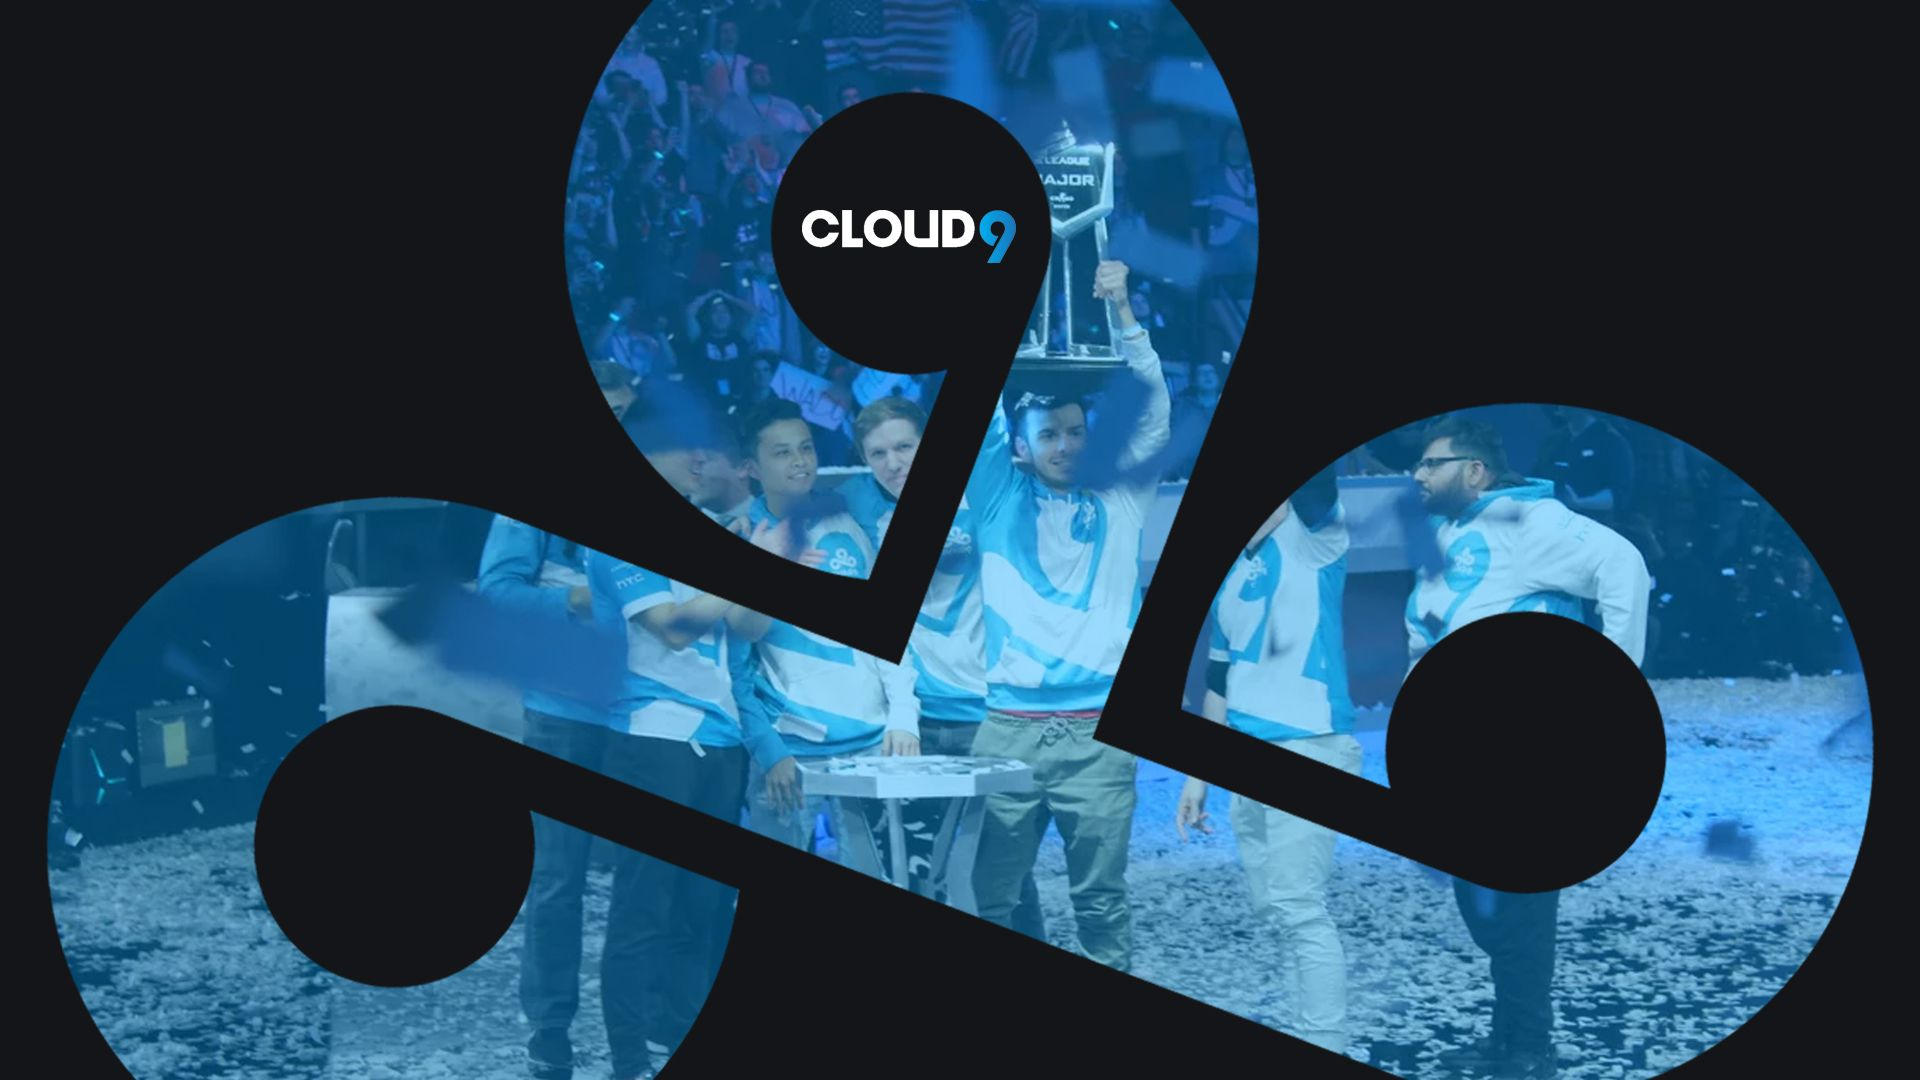 Cloud 9 Wallpapers Top Free Cloud 9 Backgrounds Wallpaperaccess